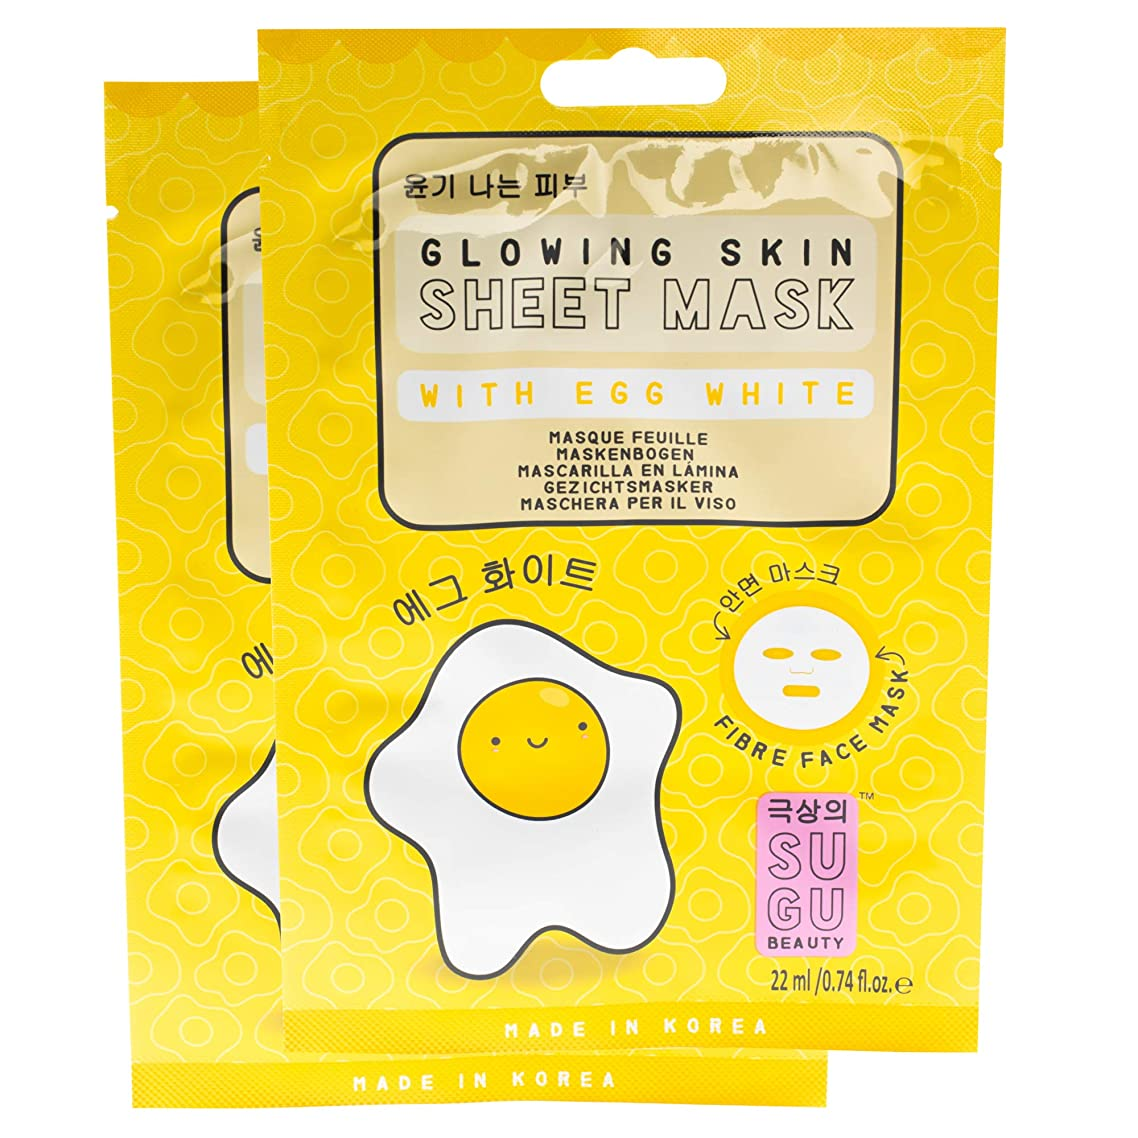 SUGU Beauty Korean Glowing Skin Sheet Mask with Egg White, Pack of 2